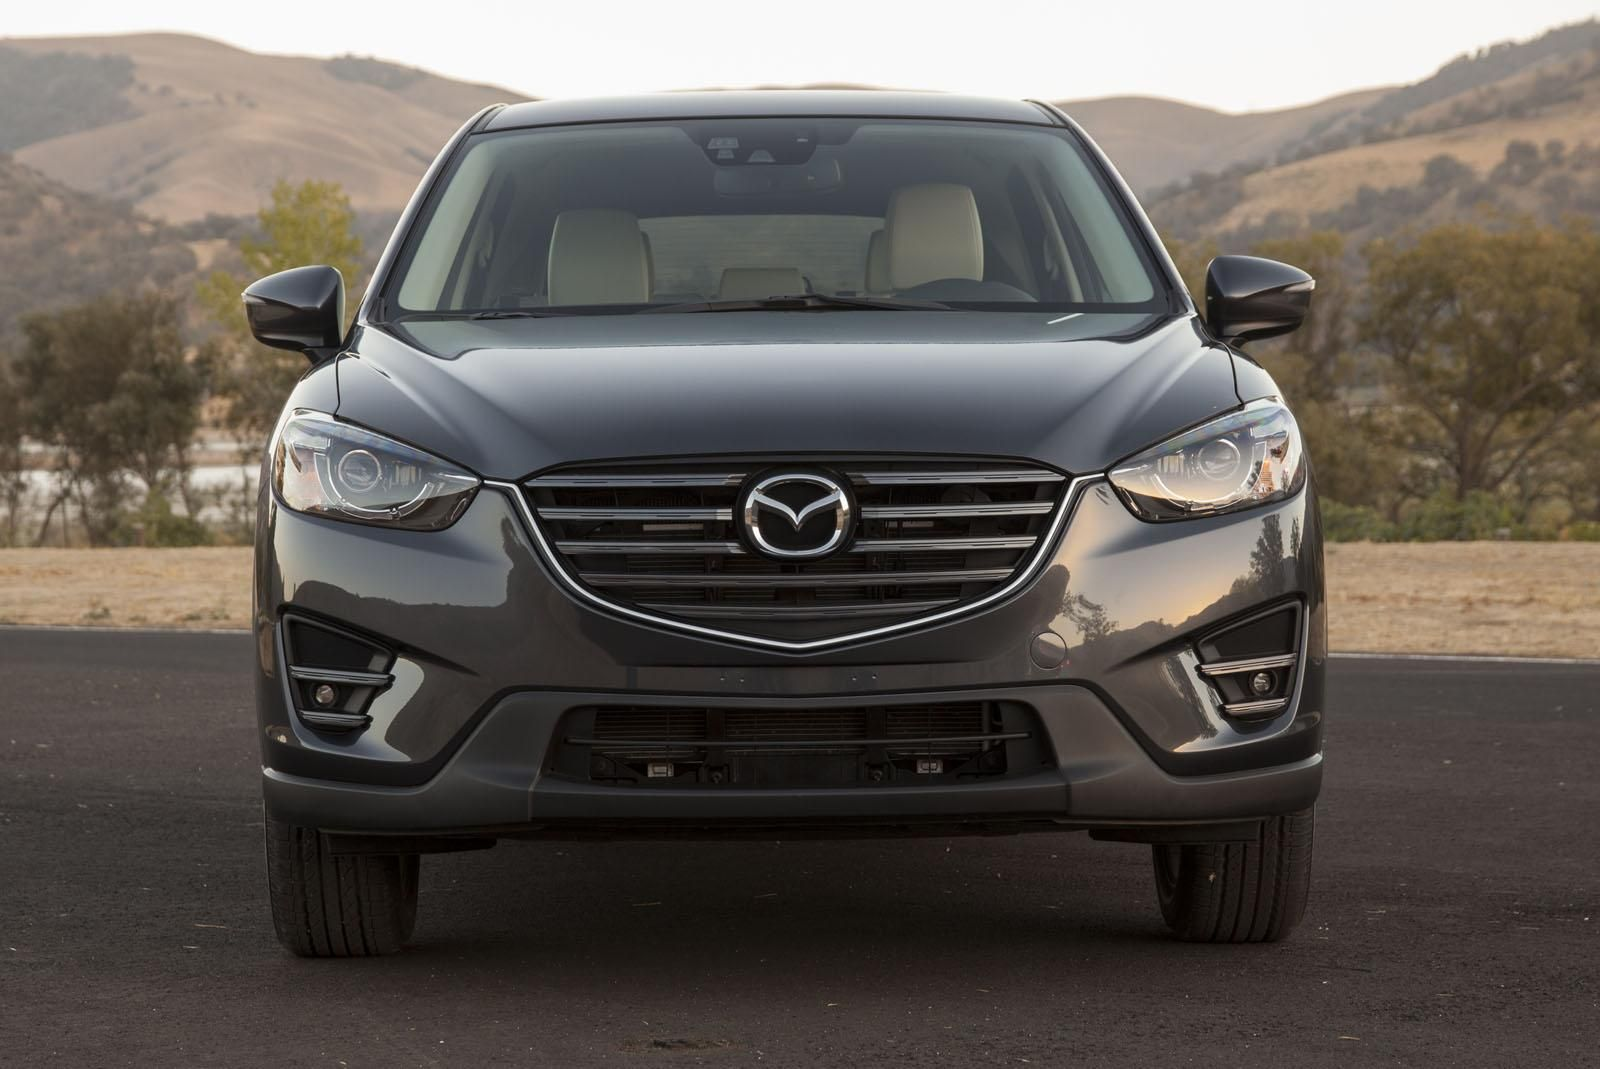 2016 Mazda Cx5 Canada Mazda, Compare cars, Car buyer